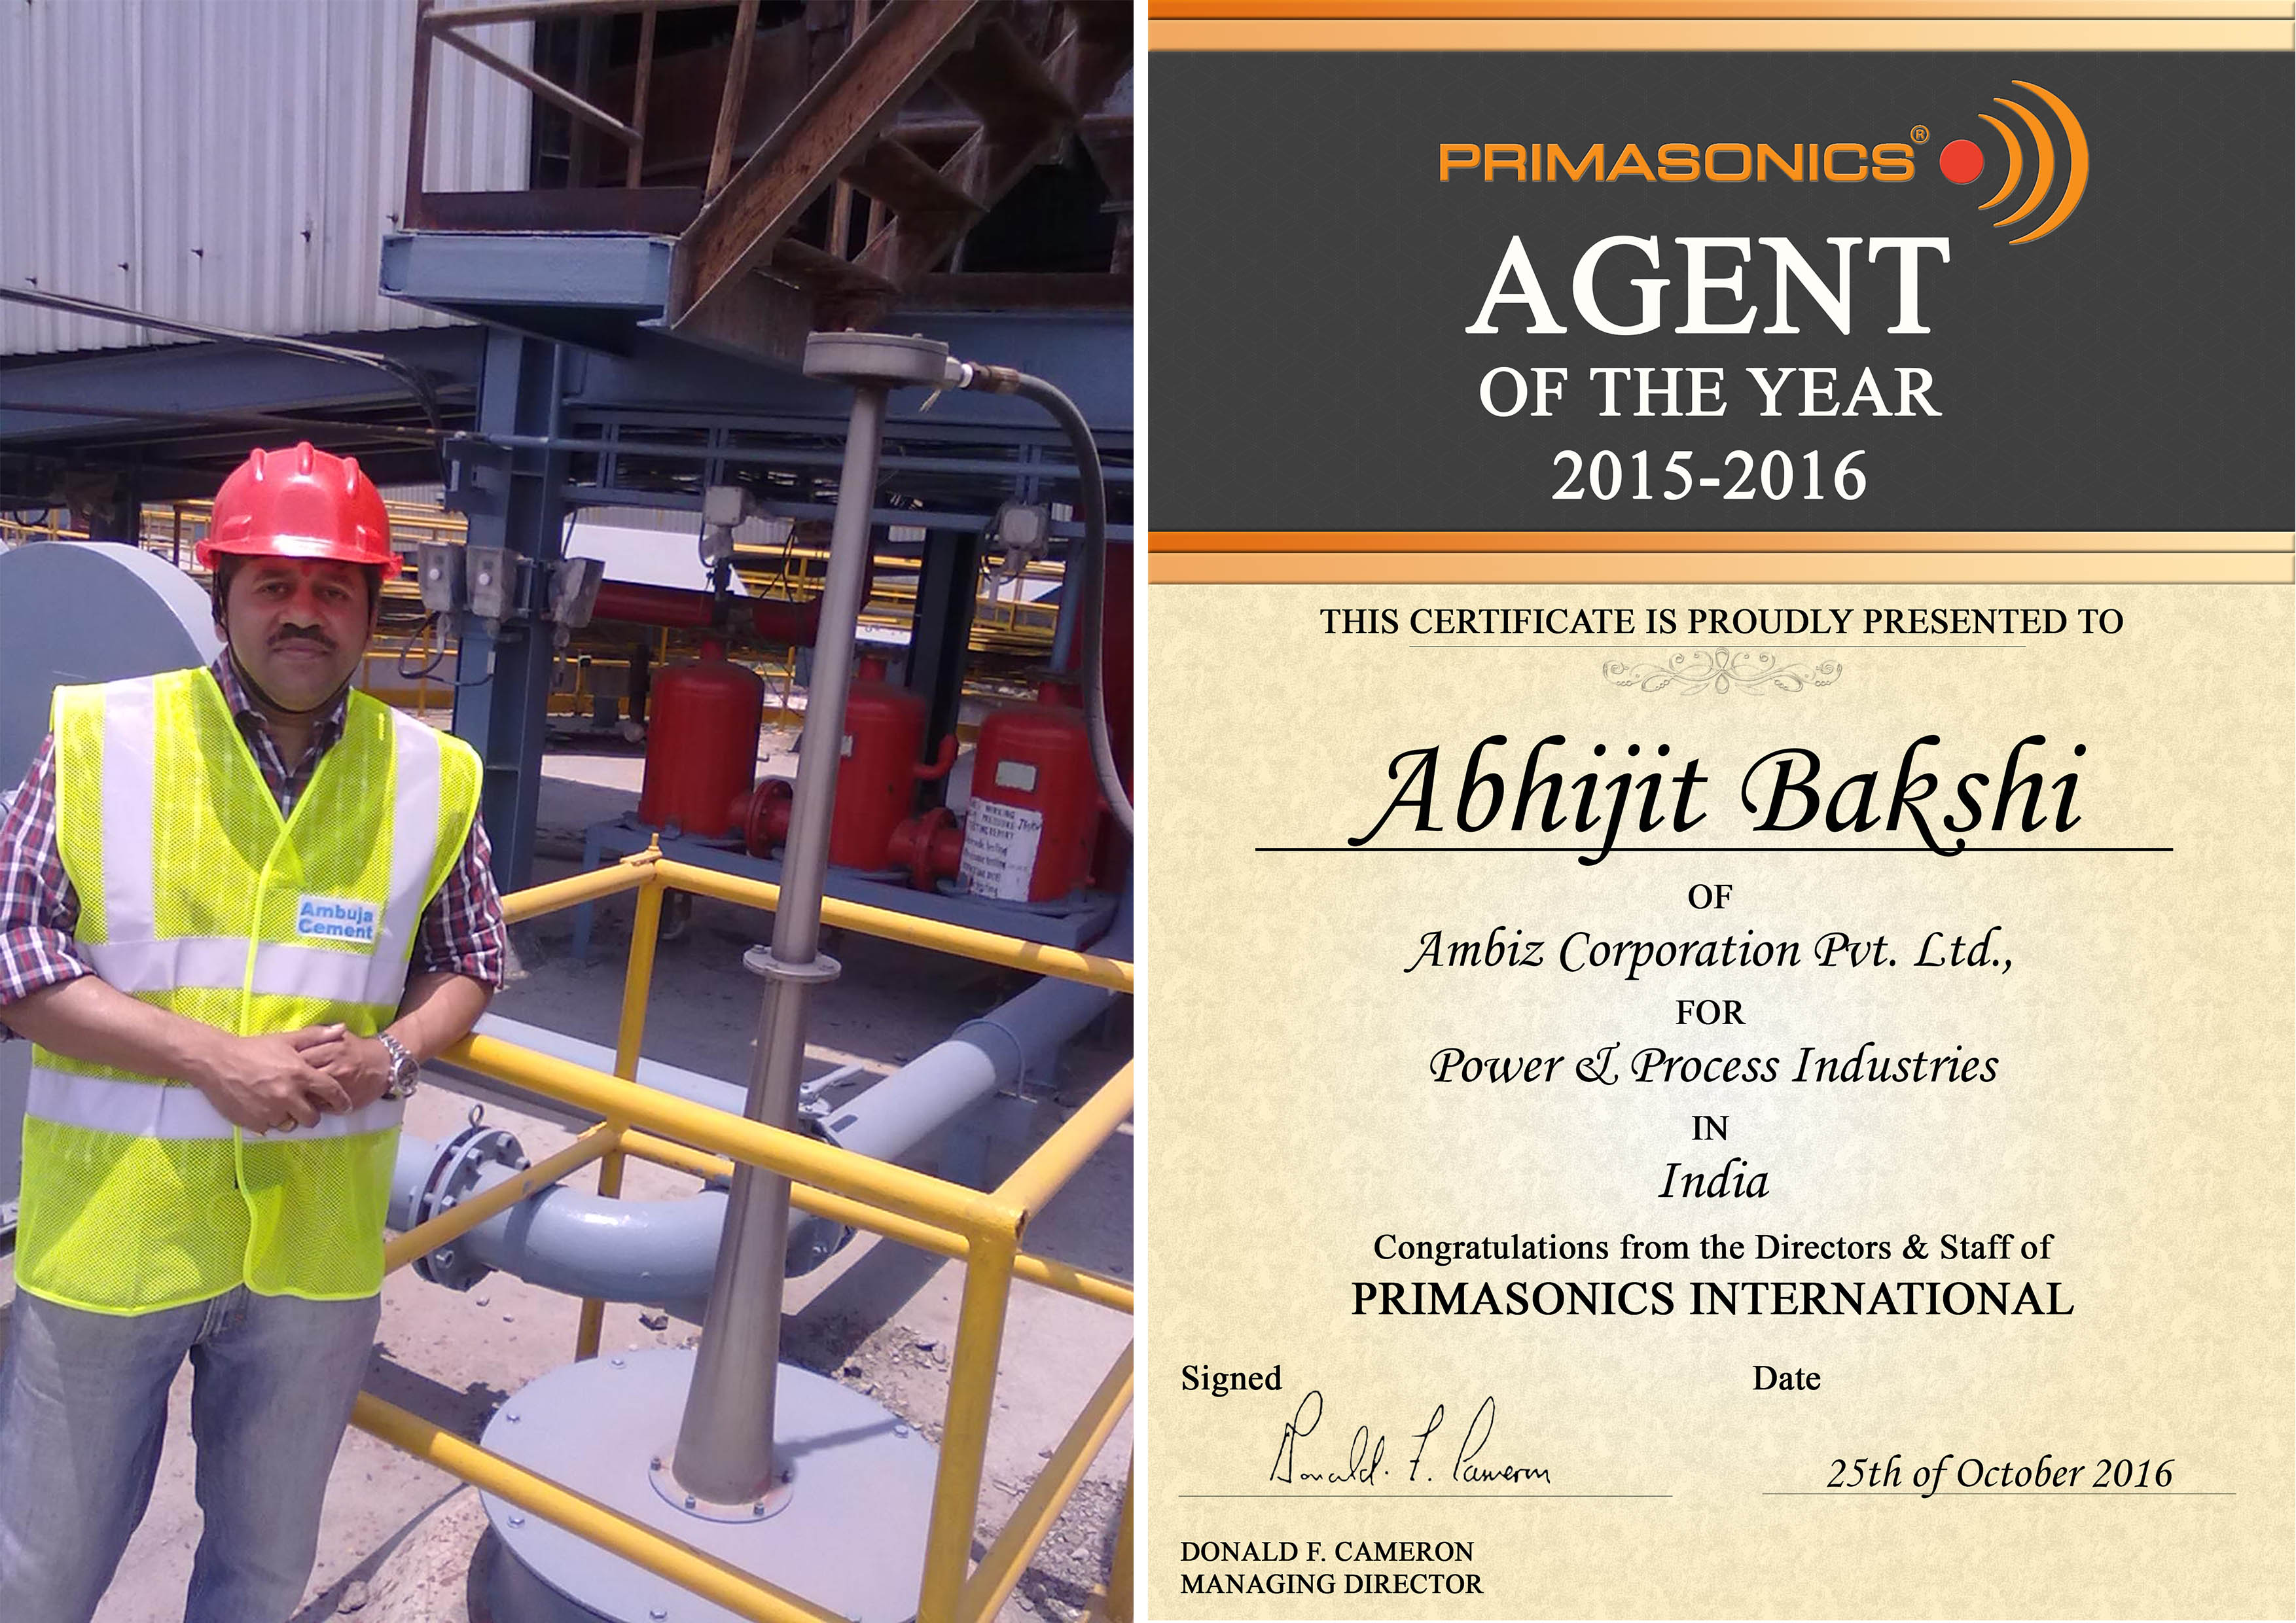 Abhijit Bakshi - Primasonics Agent of the Year 15-16